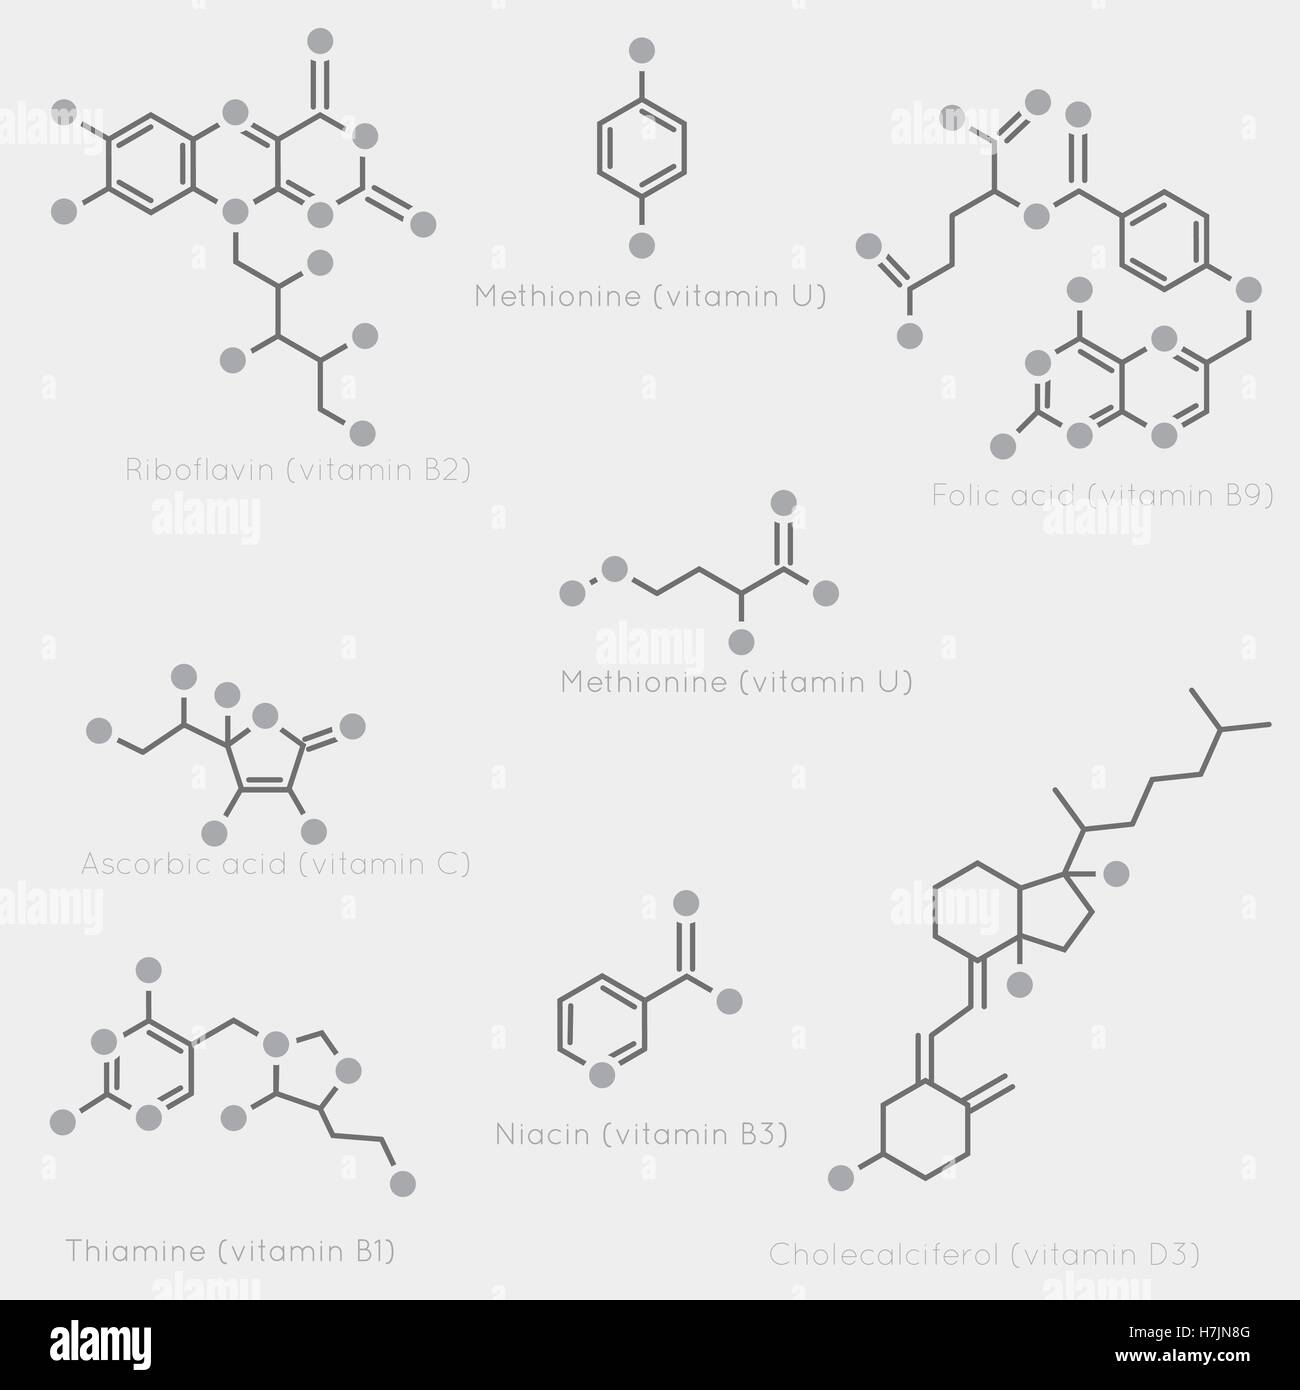 Skeletal formulas of some vitamins. Schematic image of chemical organic molecules, nutrients. - Stock Image